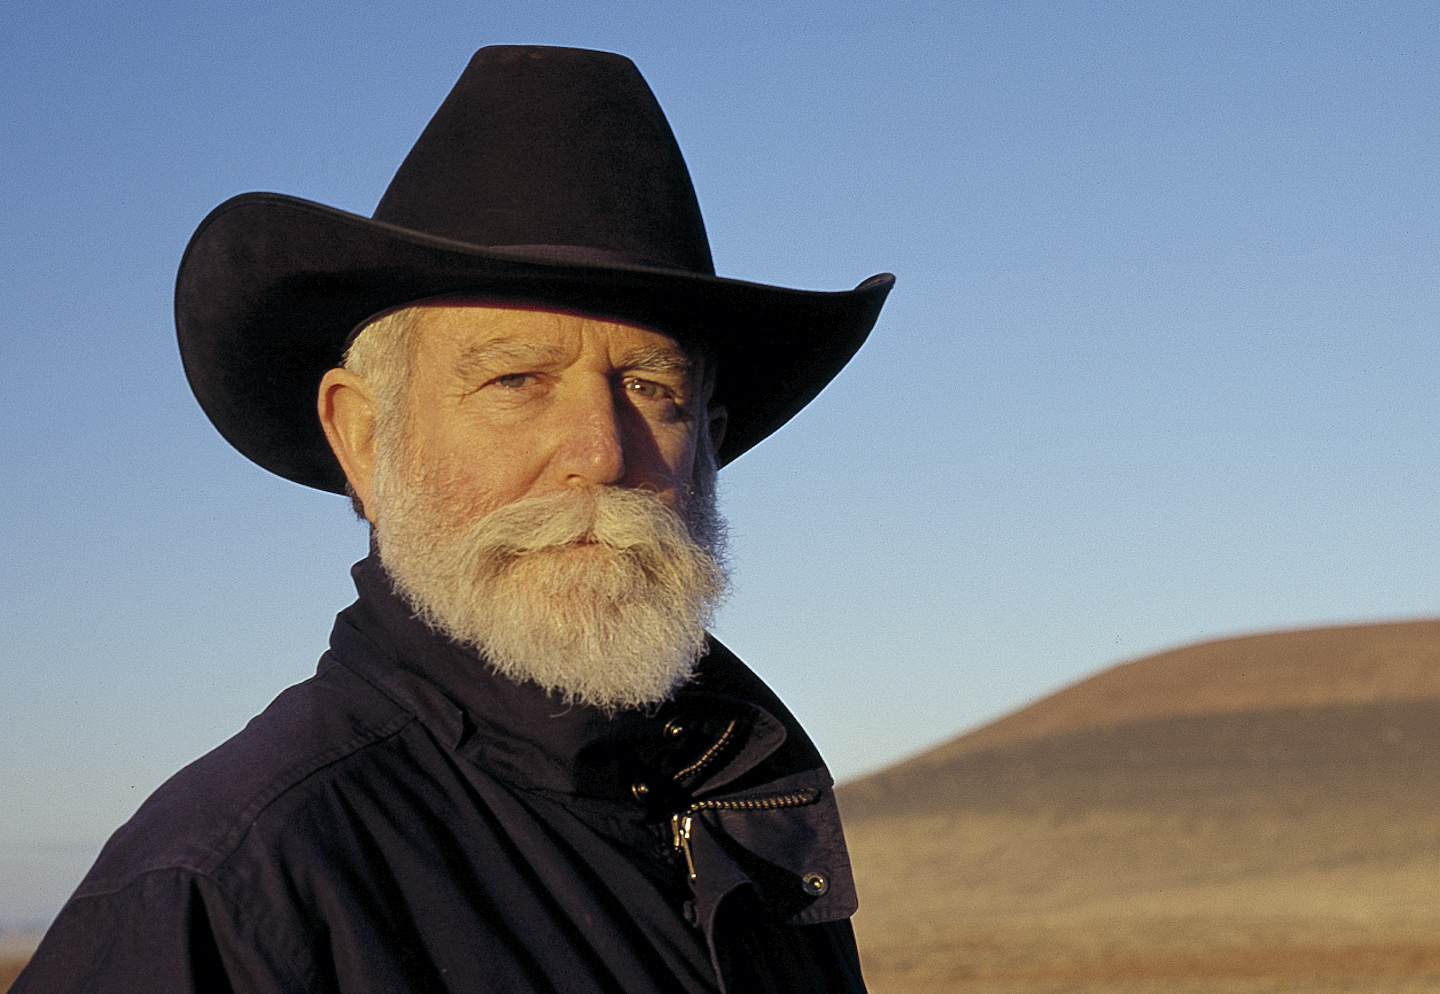 James Turrell in front of the Roden Crater Project in October 2001.